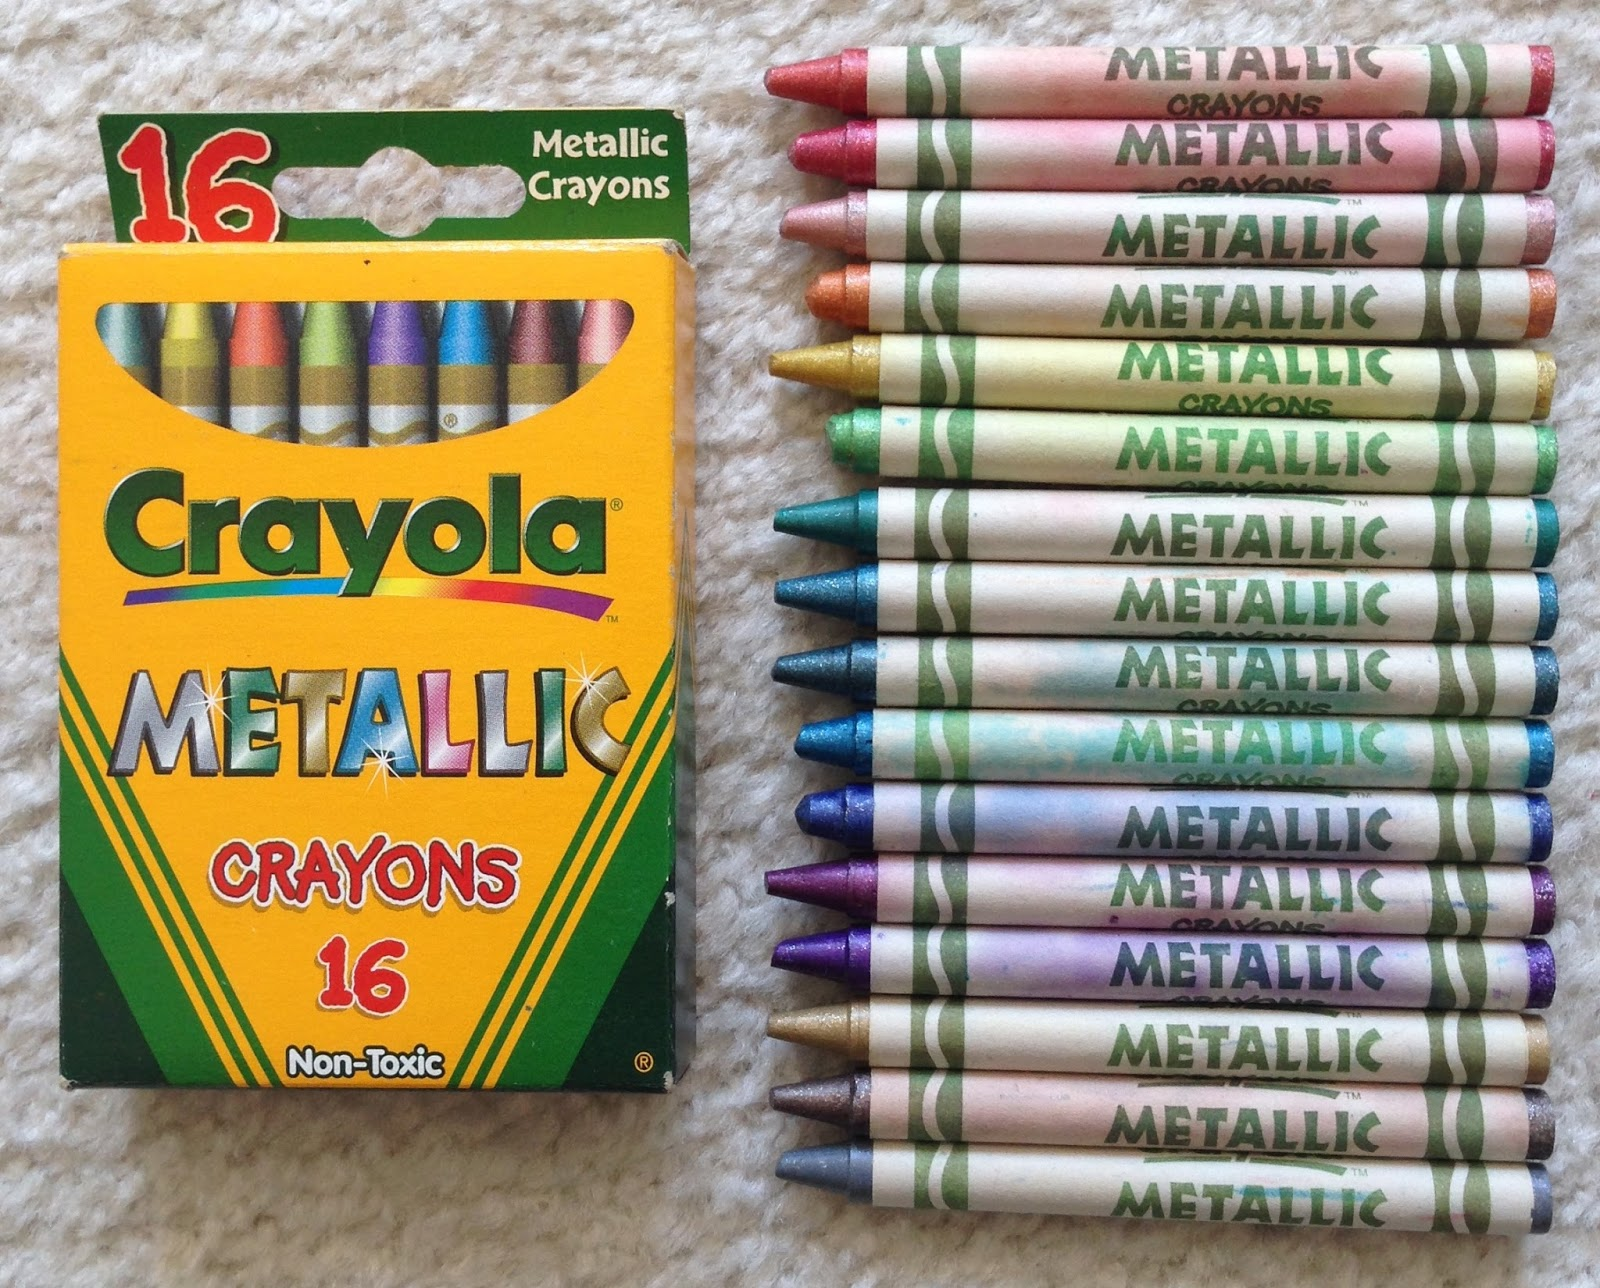 2-Pack of 16 Crayola Metallic FX Crayons